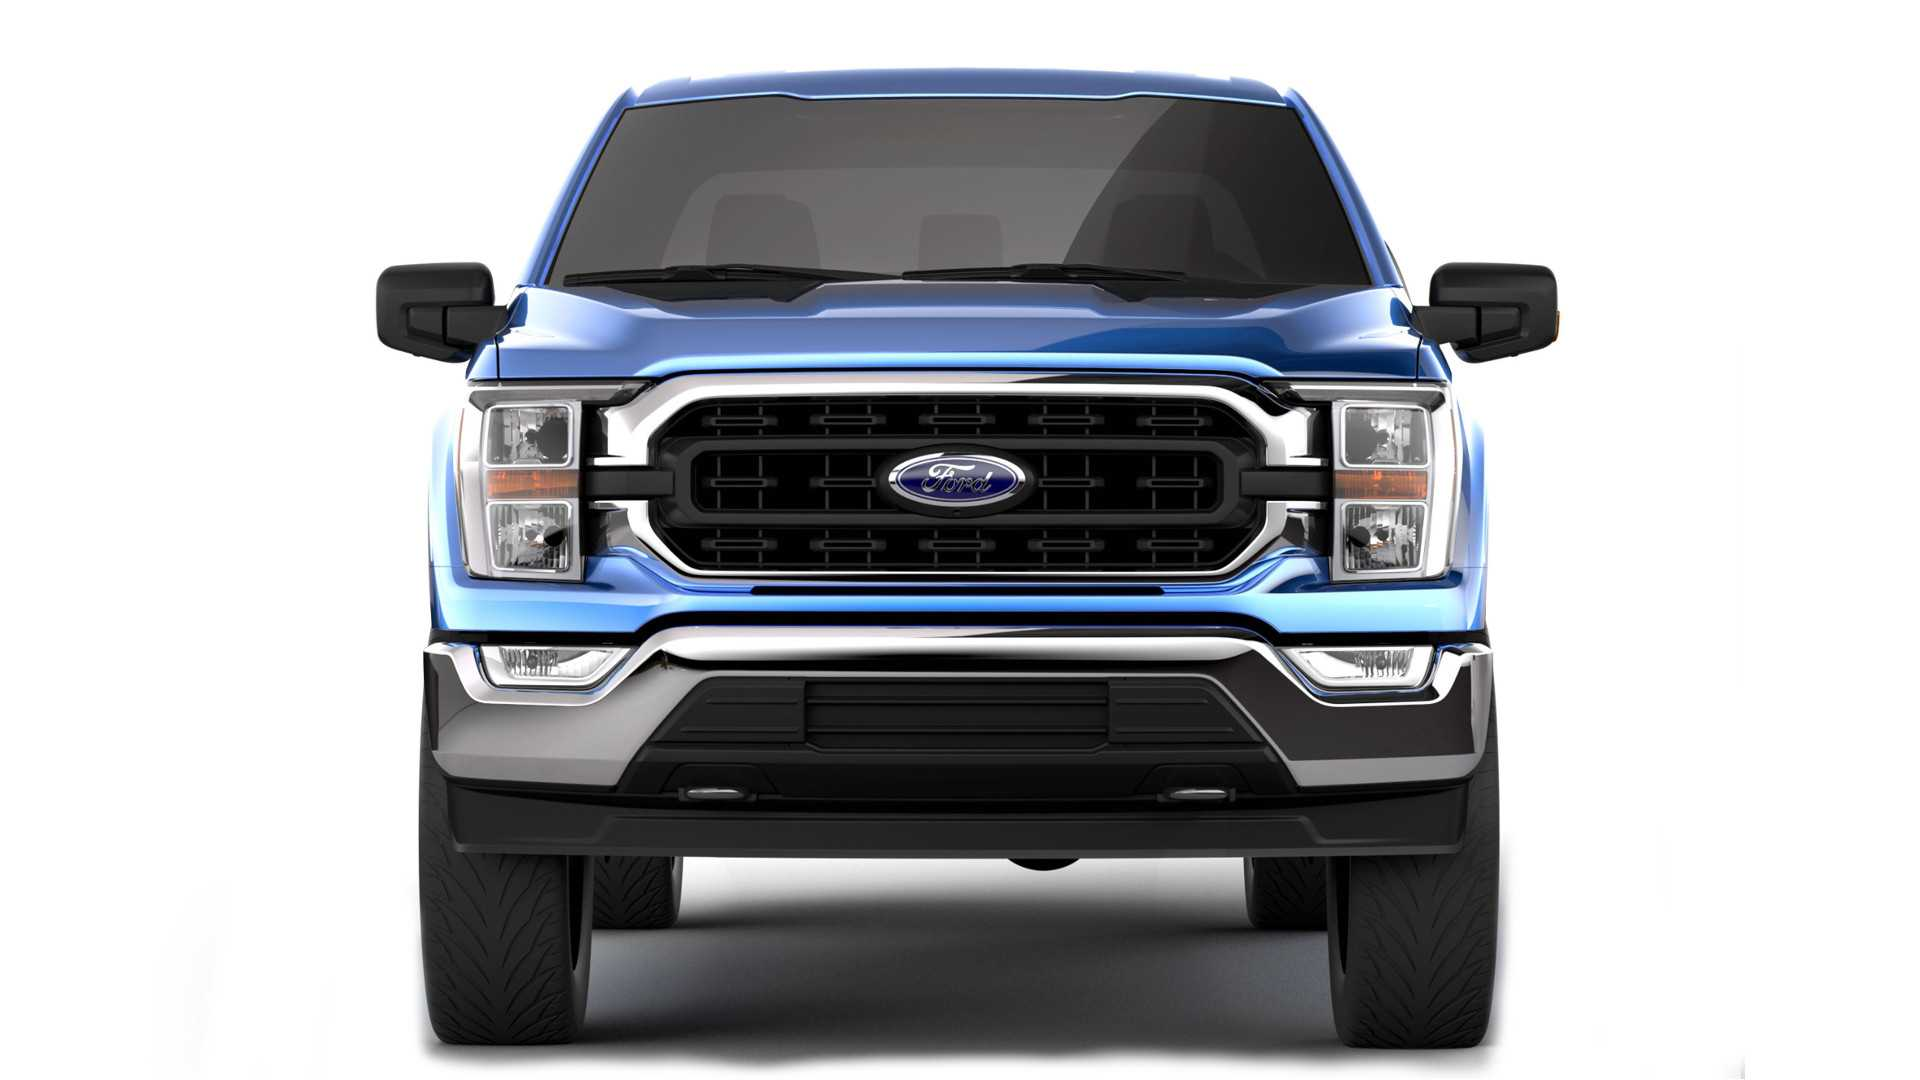 2021-ford-f-150-grille-designs.jpg